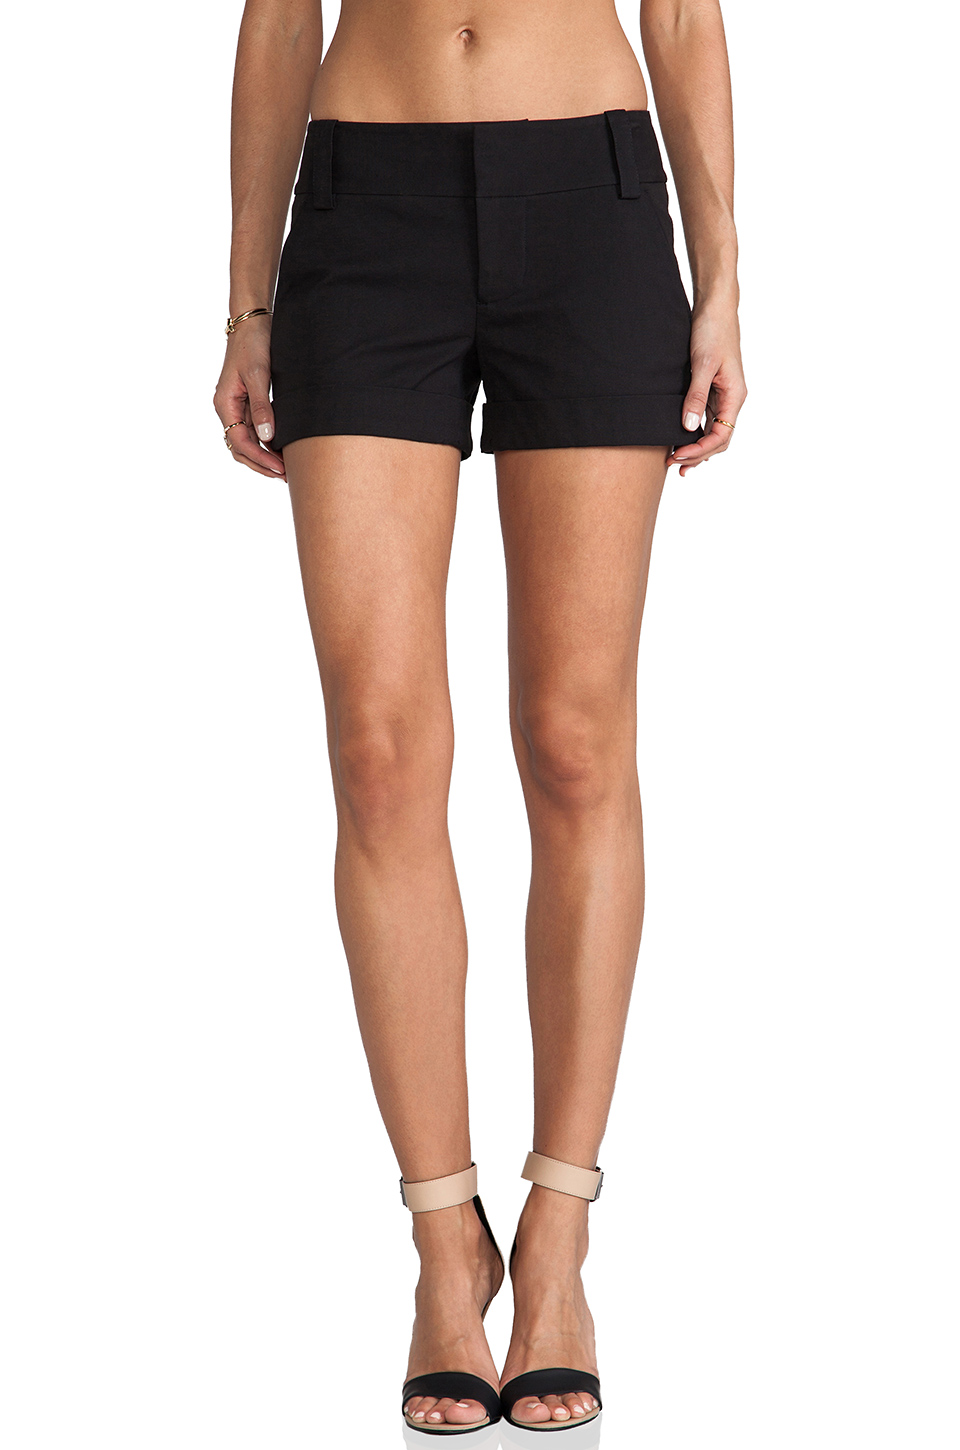 Alice + Olivia Cady Cuff Short in Black